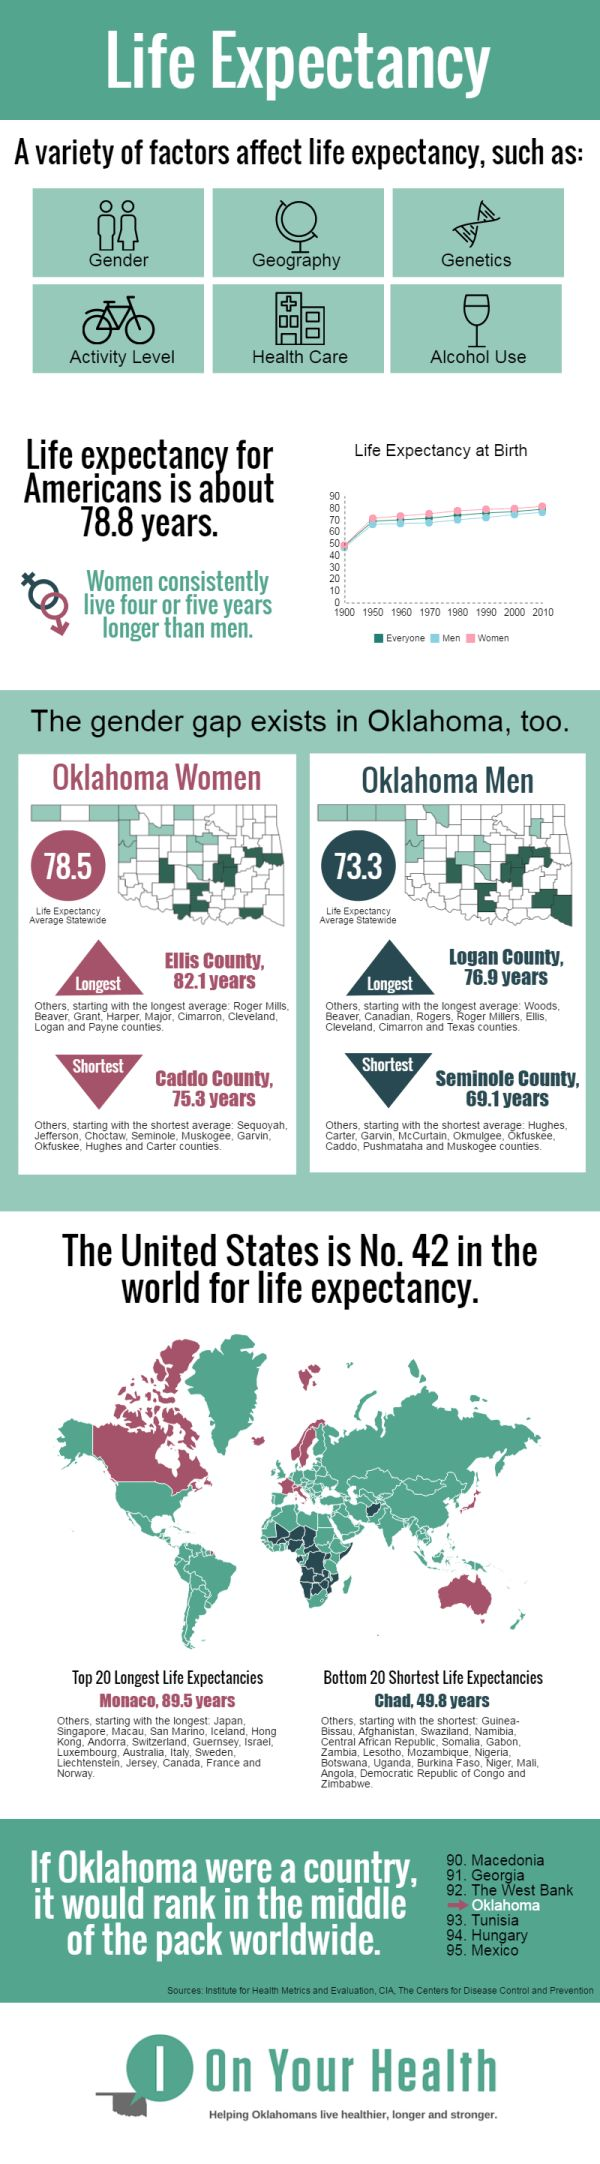 405 Best Images About Best Infographics On Pinterest